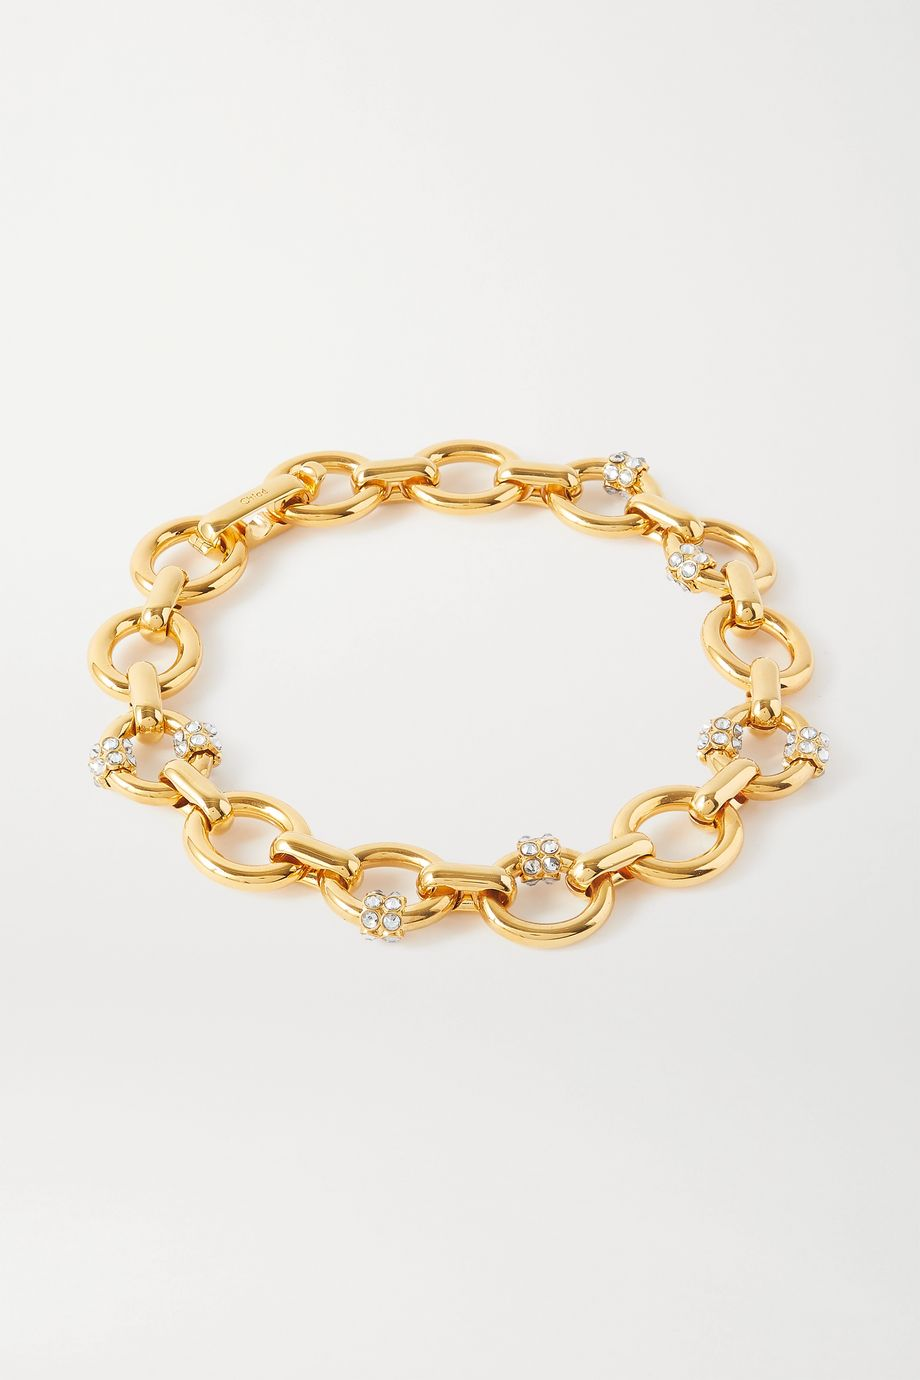 Chloé Egée gold-tone crystal necklace